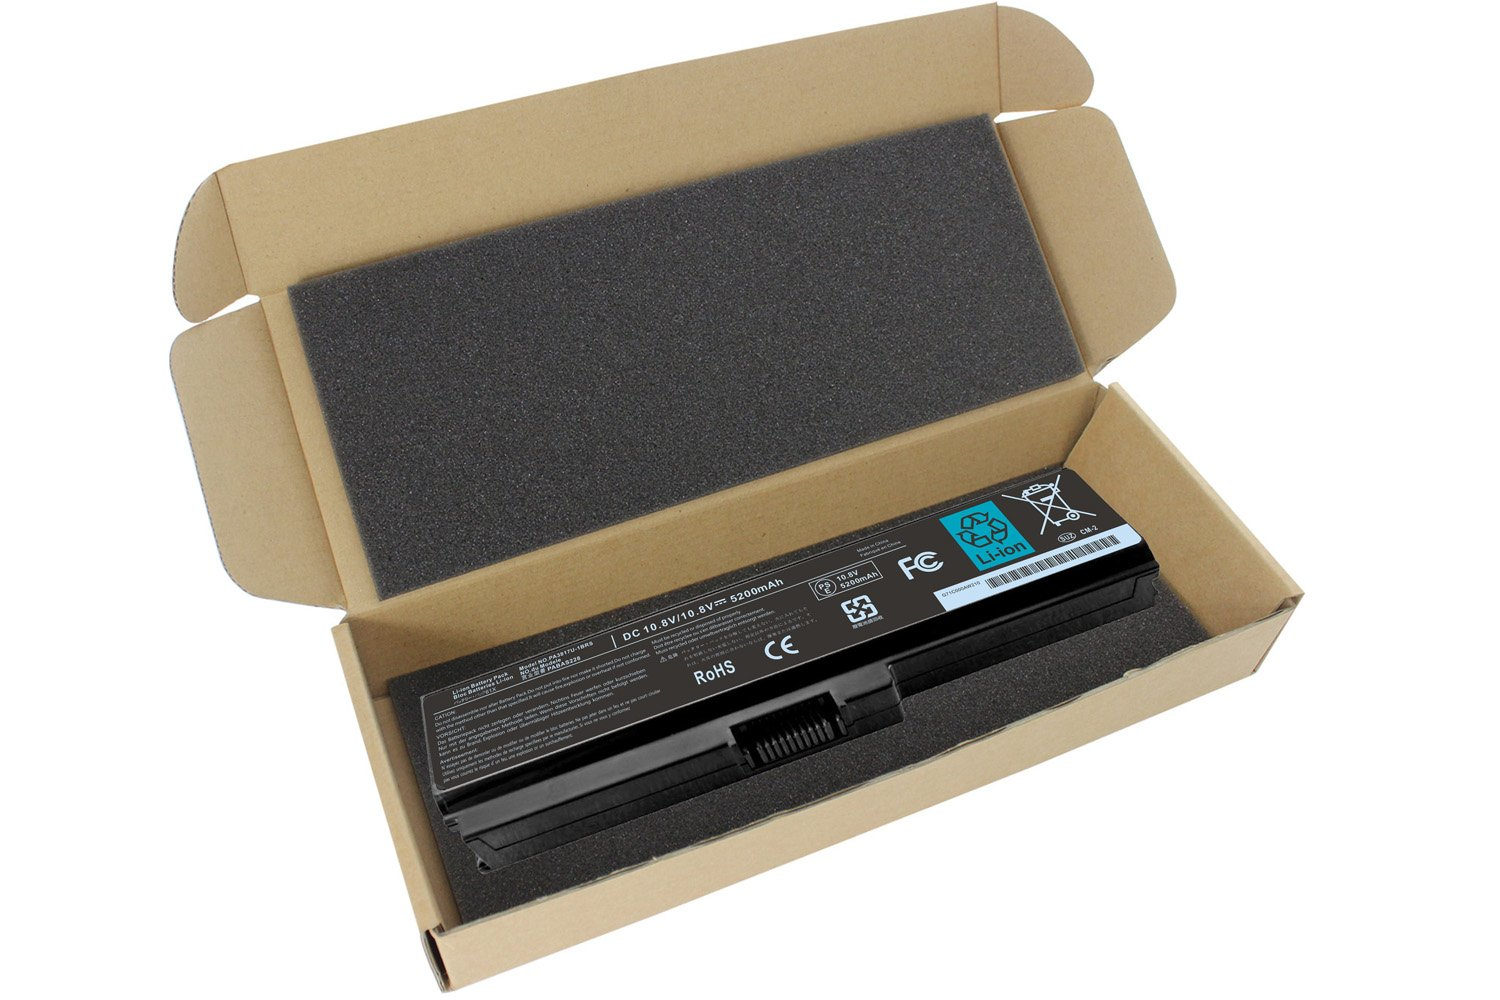 Easy&Fine PA3817U-1BRS Laptop Battery for Toshiba Satellite A665 A665-S5170 A665-S6086 A665-S6050 M645-S4050 M645-S4070 M505-S4940 L755-S5277 L775D-S7222 P755-S5265 C675-s7103 C675-s7106 by Easy&Fine (Image #5)